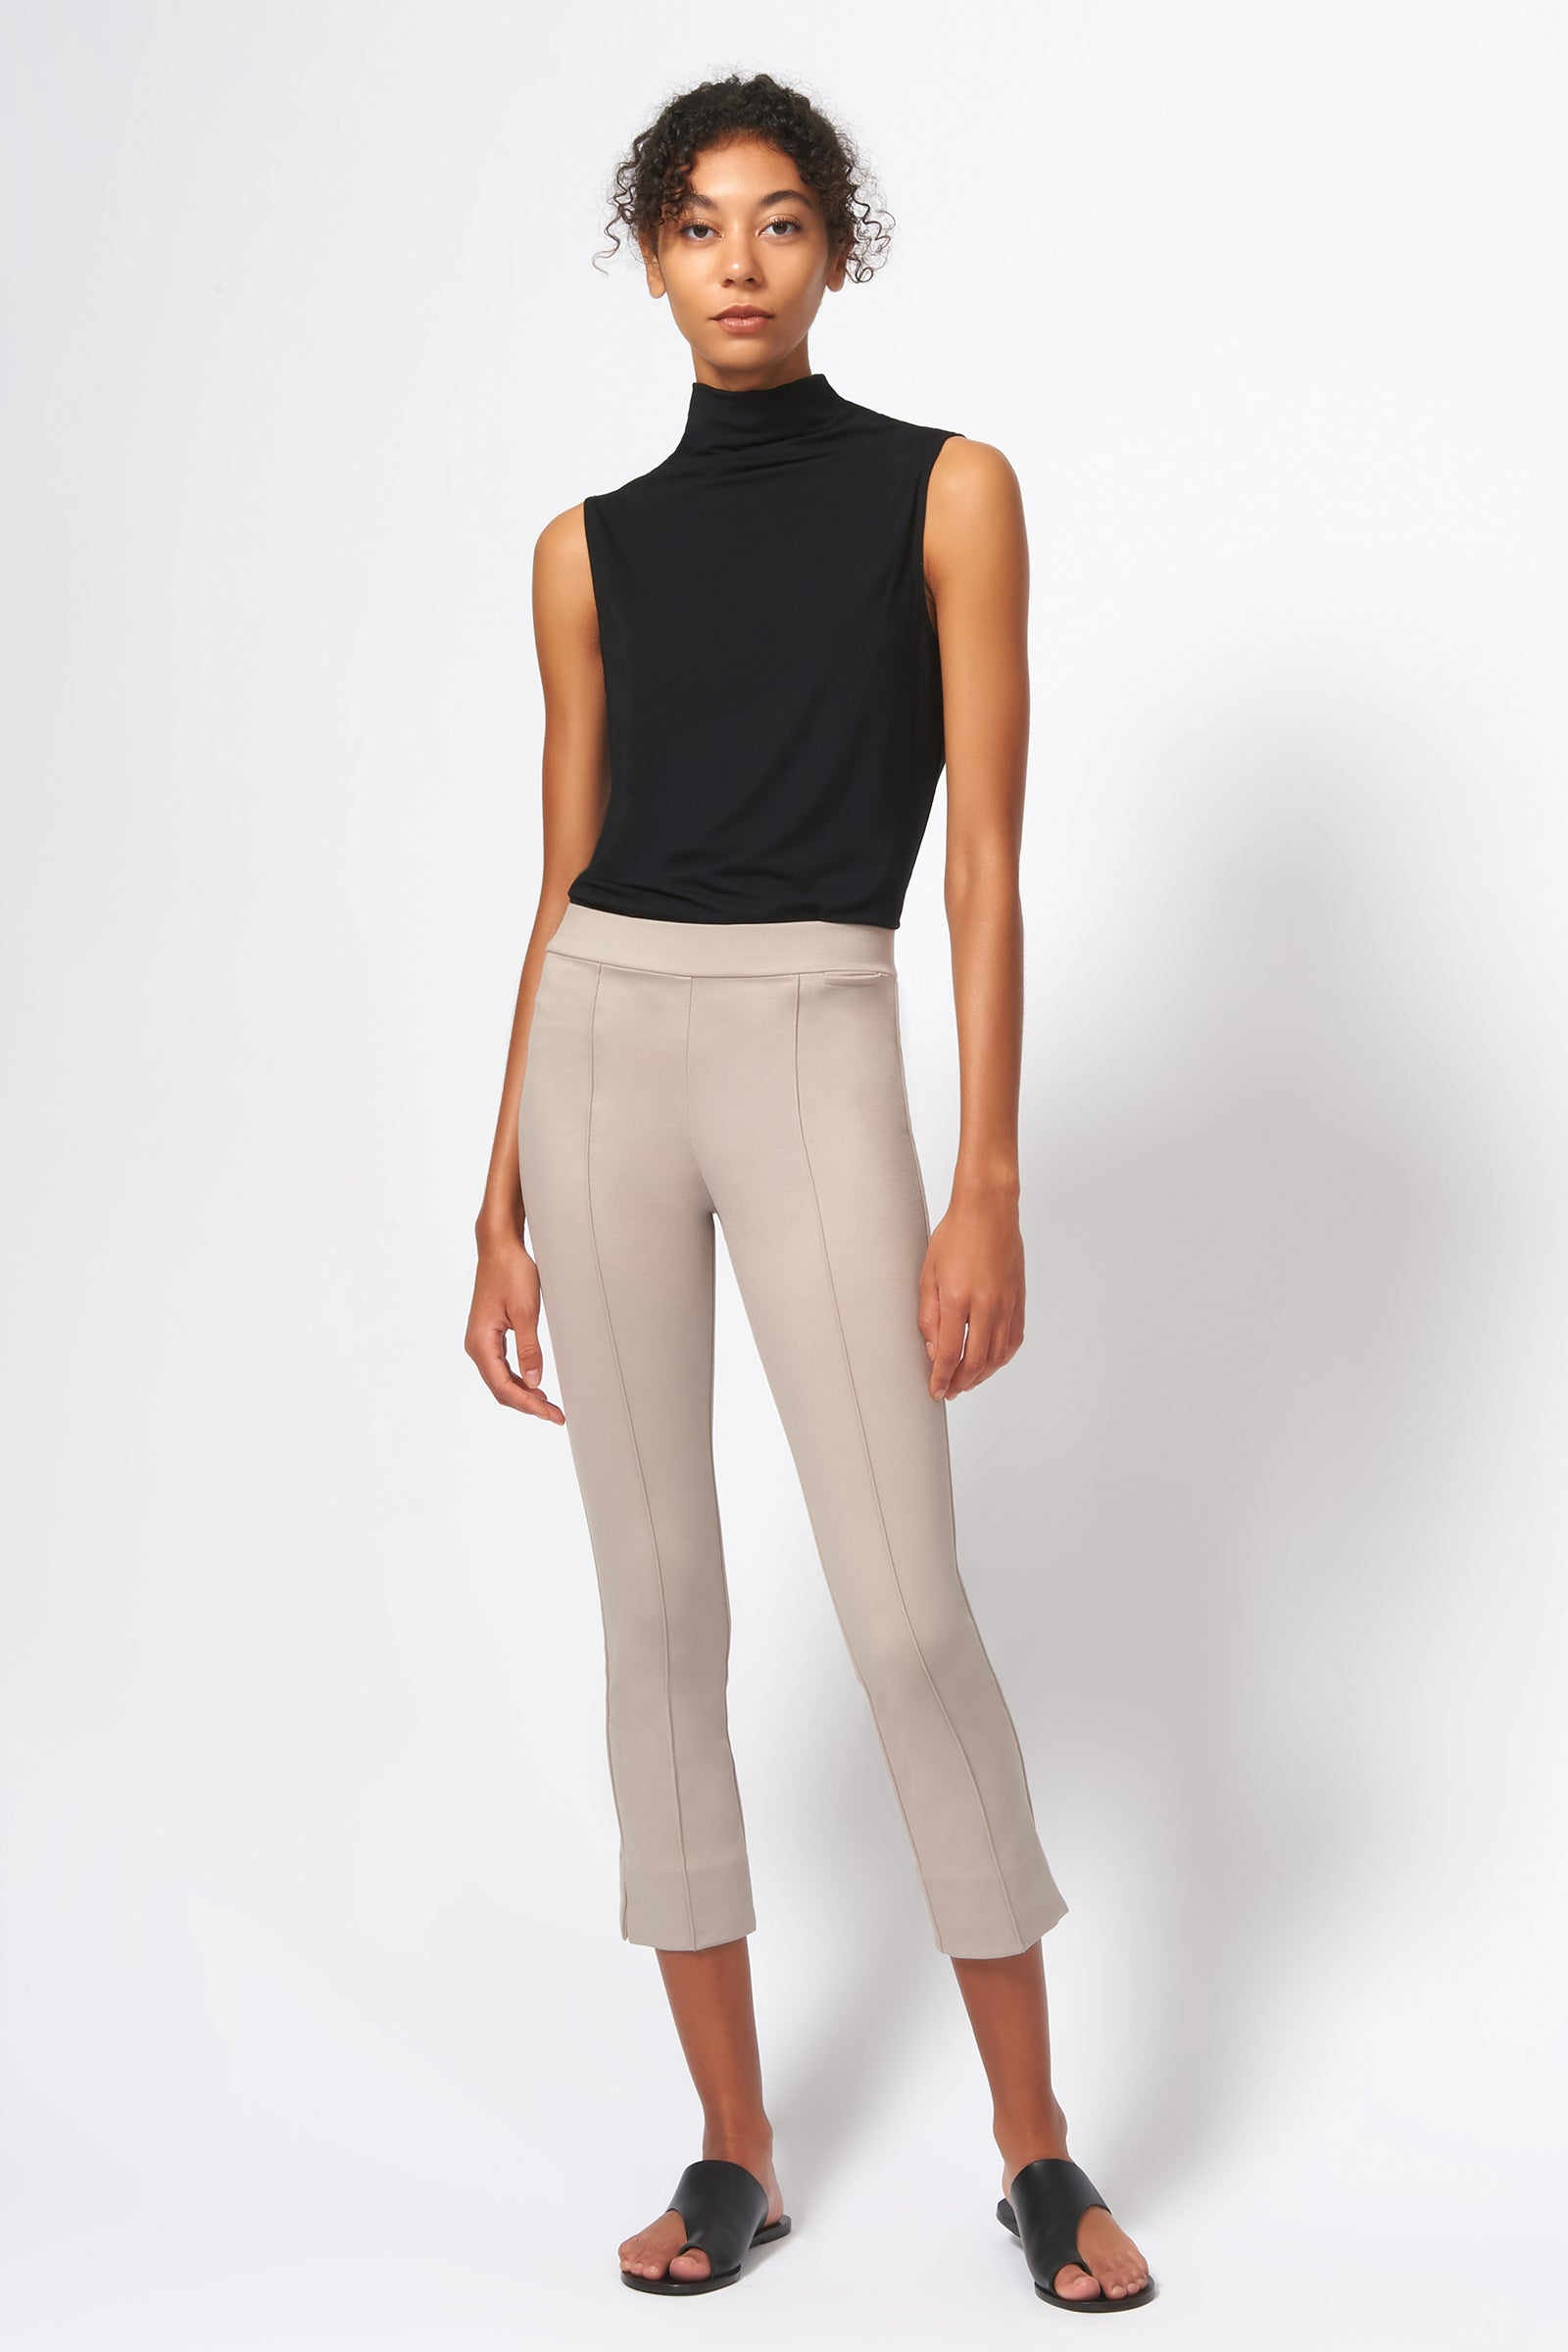 Kal Rieman Pintuck Slit Capri in Taupe on Model Front Full View